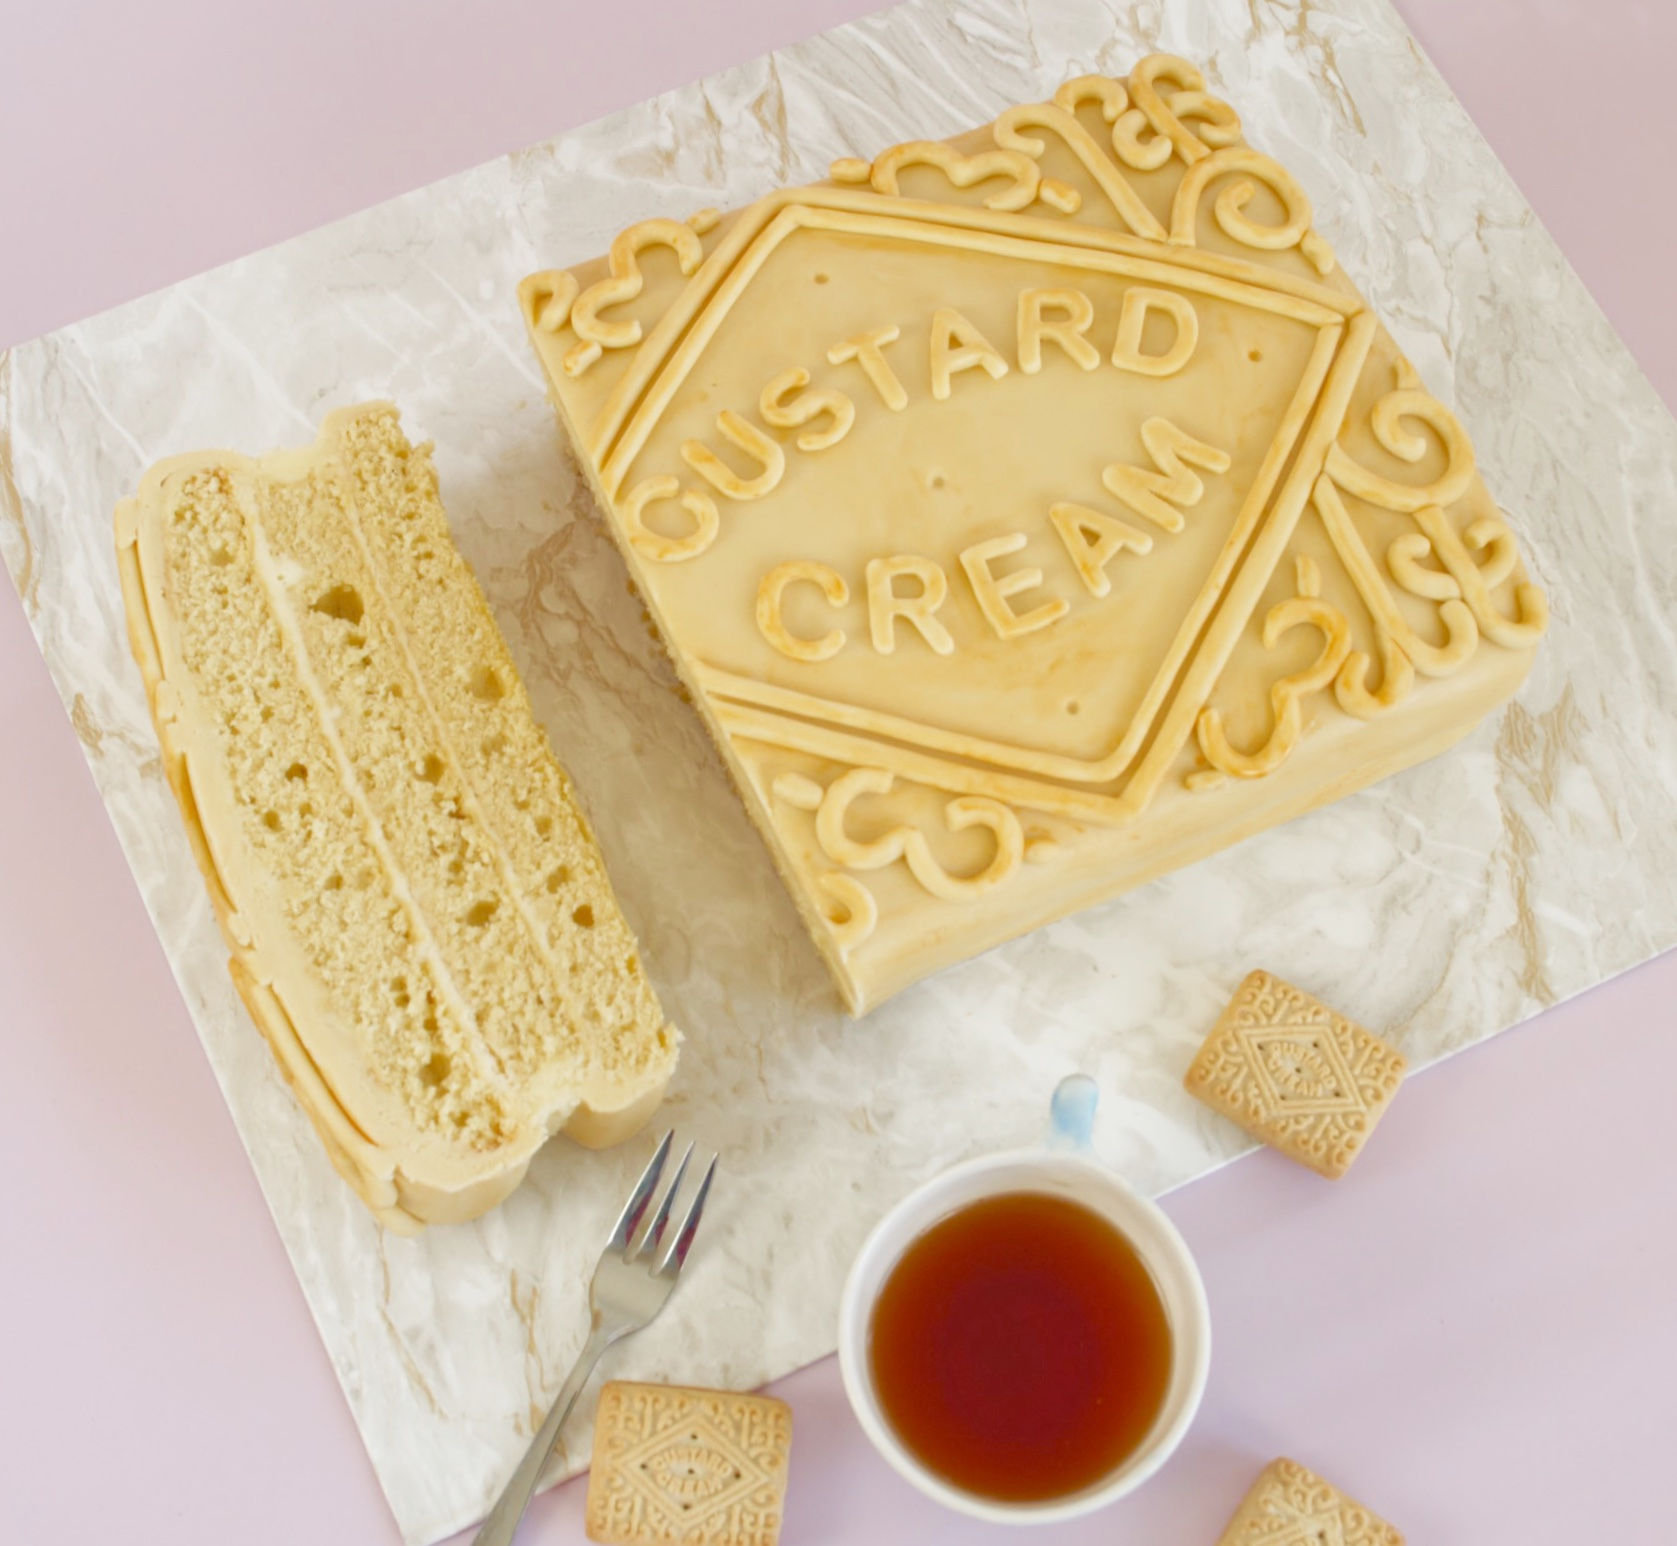 How To Make An Awesome Giant Custard Cream Cake